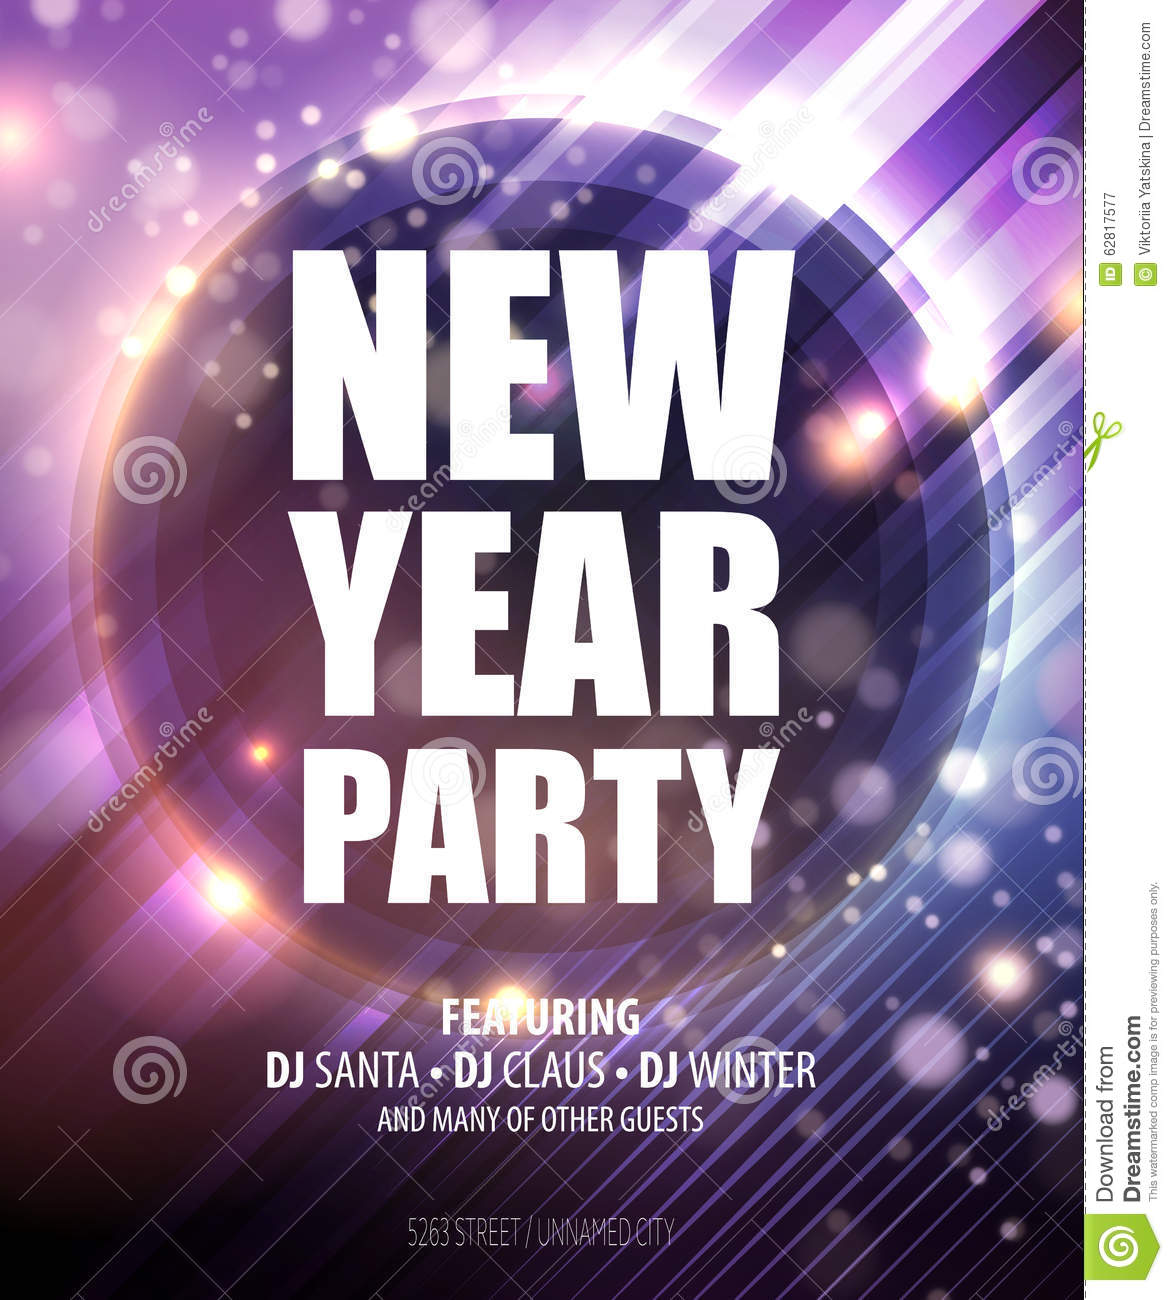 New Year And Christmas Party Poster Template Vector Image – New Year Poster Template